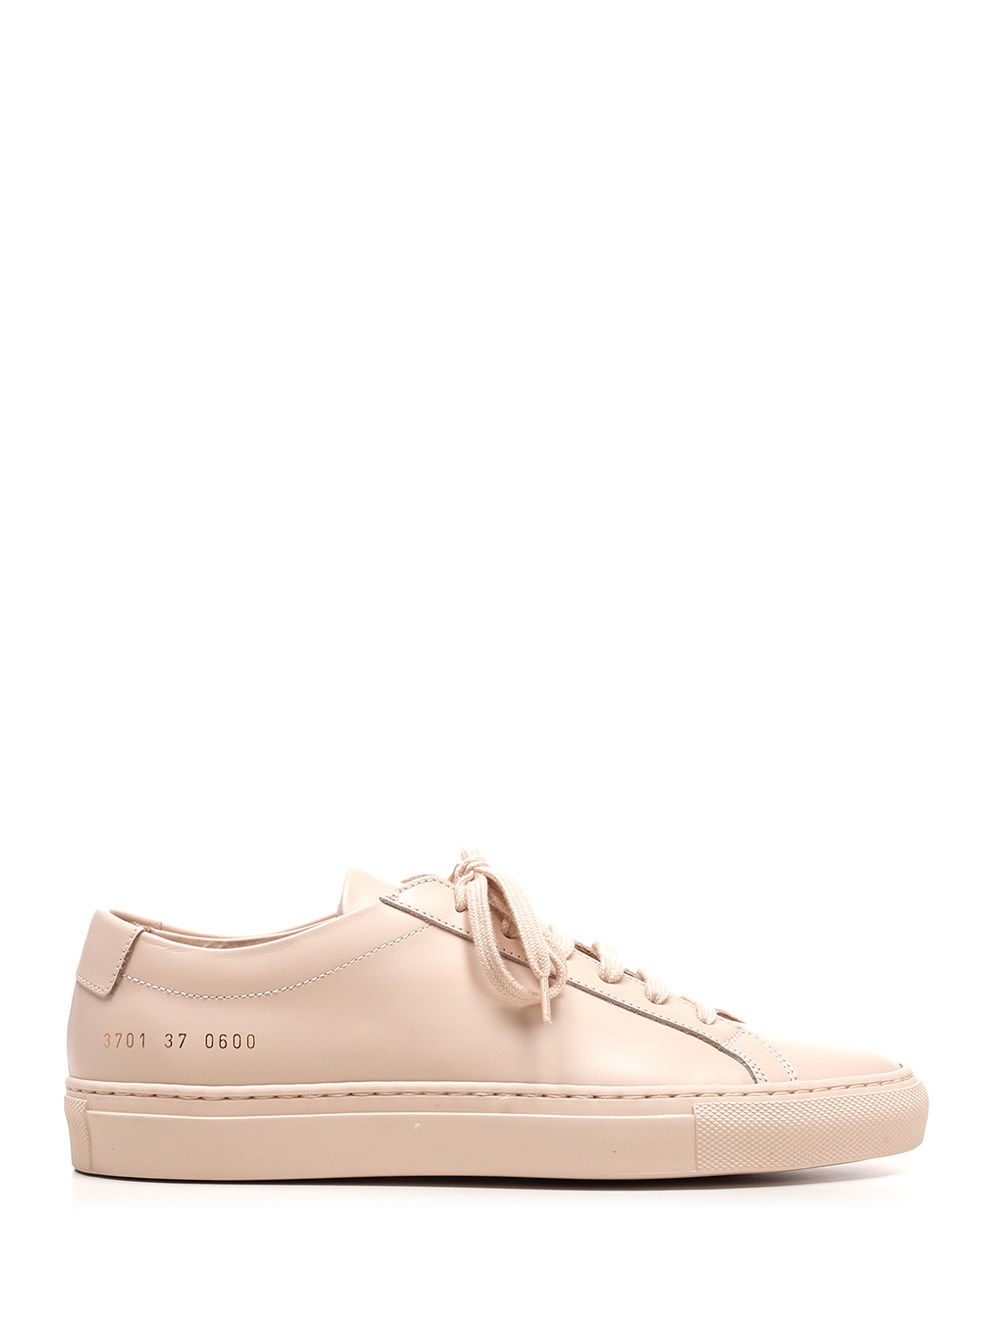 "COMMON PROJECTS Total Pink ""Achilles Original"" Sneakers"